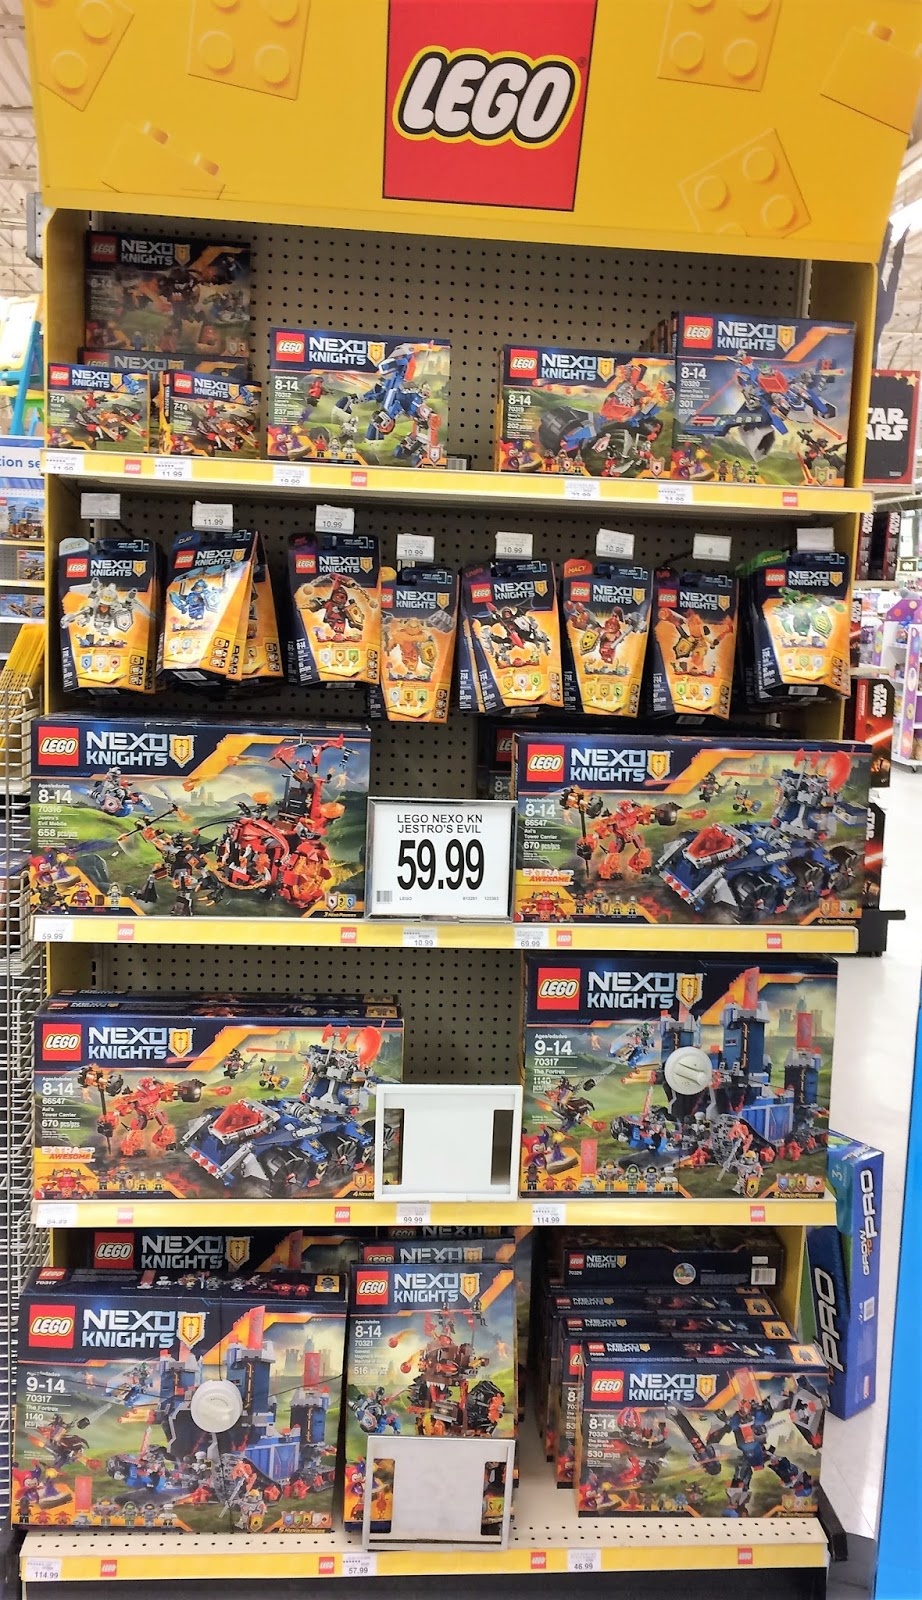 The Dedicated Nexo Knights End Cap Display Prominently At Front Of Lego Section Nothing New Here But Sheer Awesomeness These Sets Will